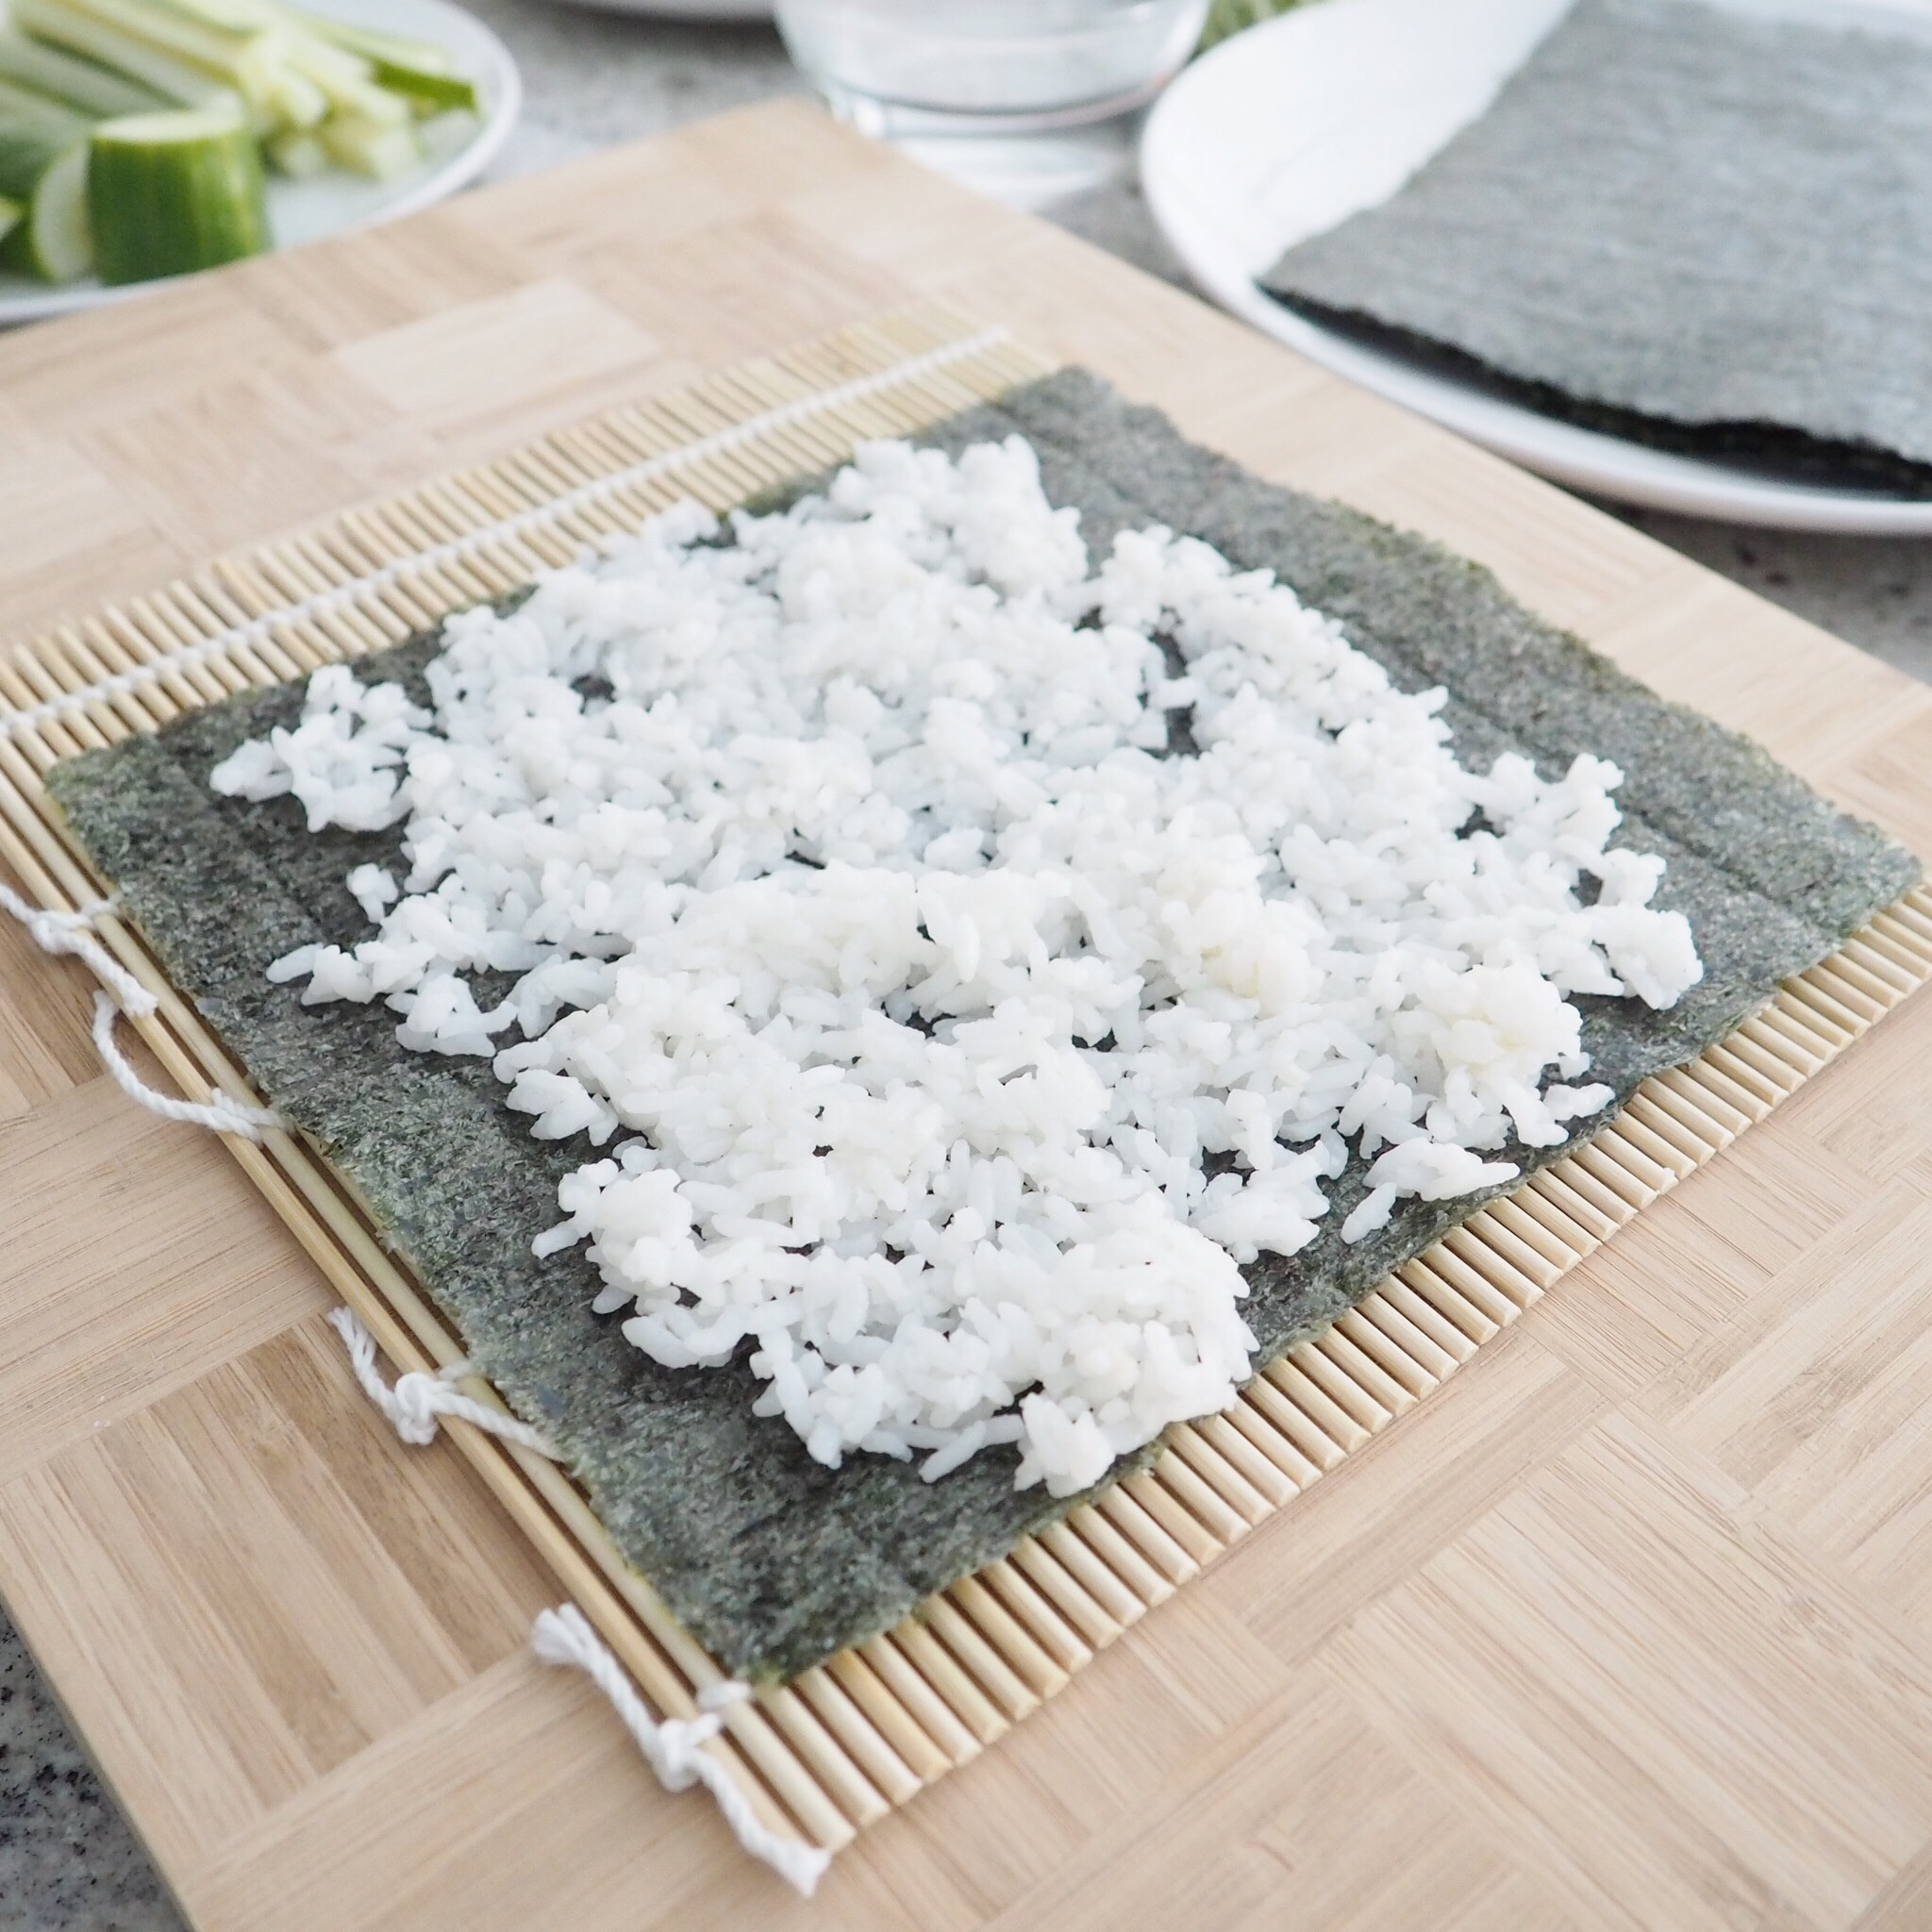 Step 2: Spread out sushi rice evenly onto nori, leaving the top and bottom edge.